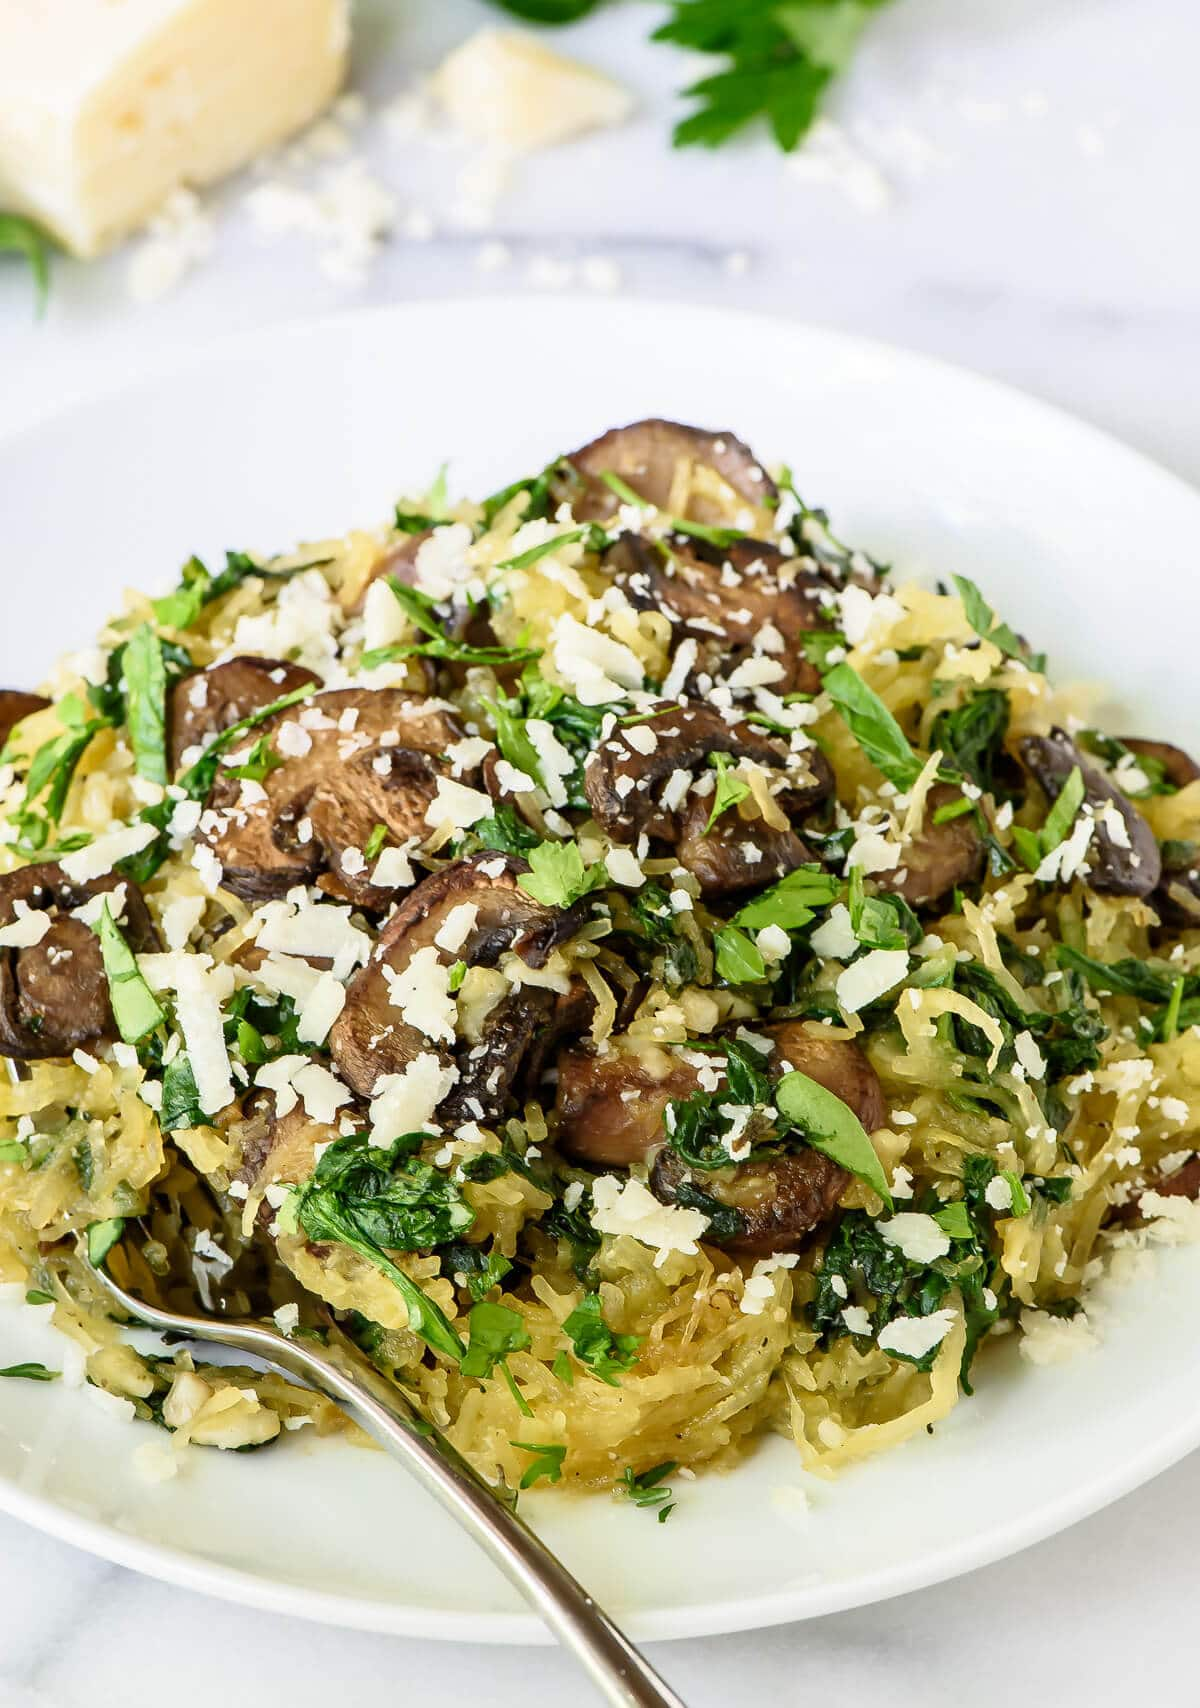 Roasted Spaghetti Squash with Parmesan and Herbs